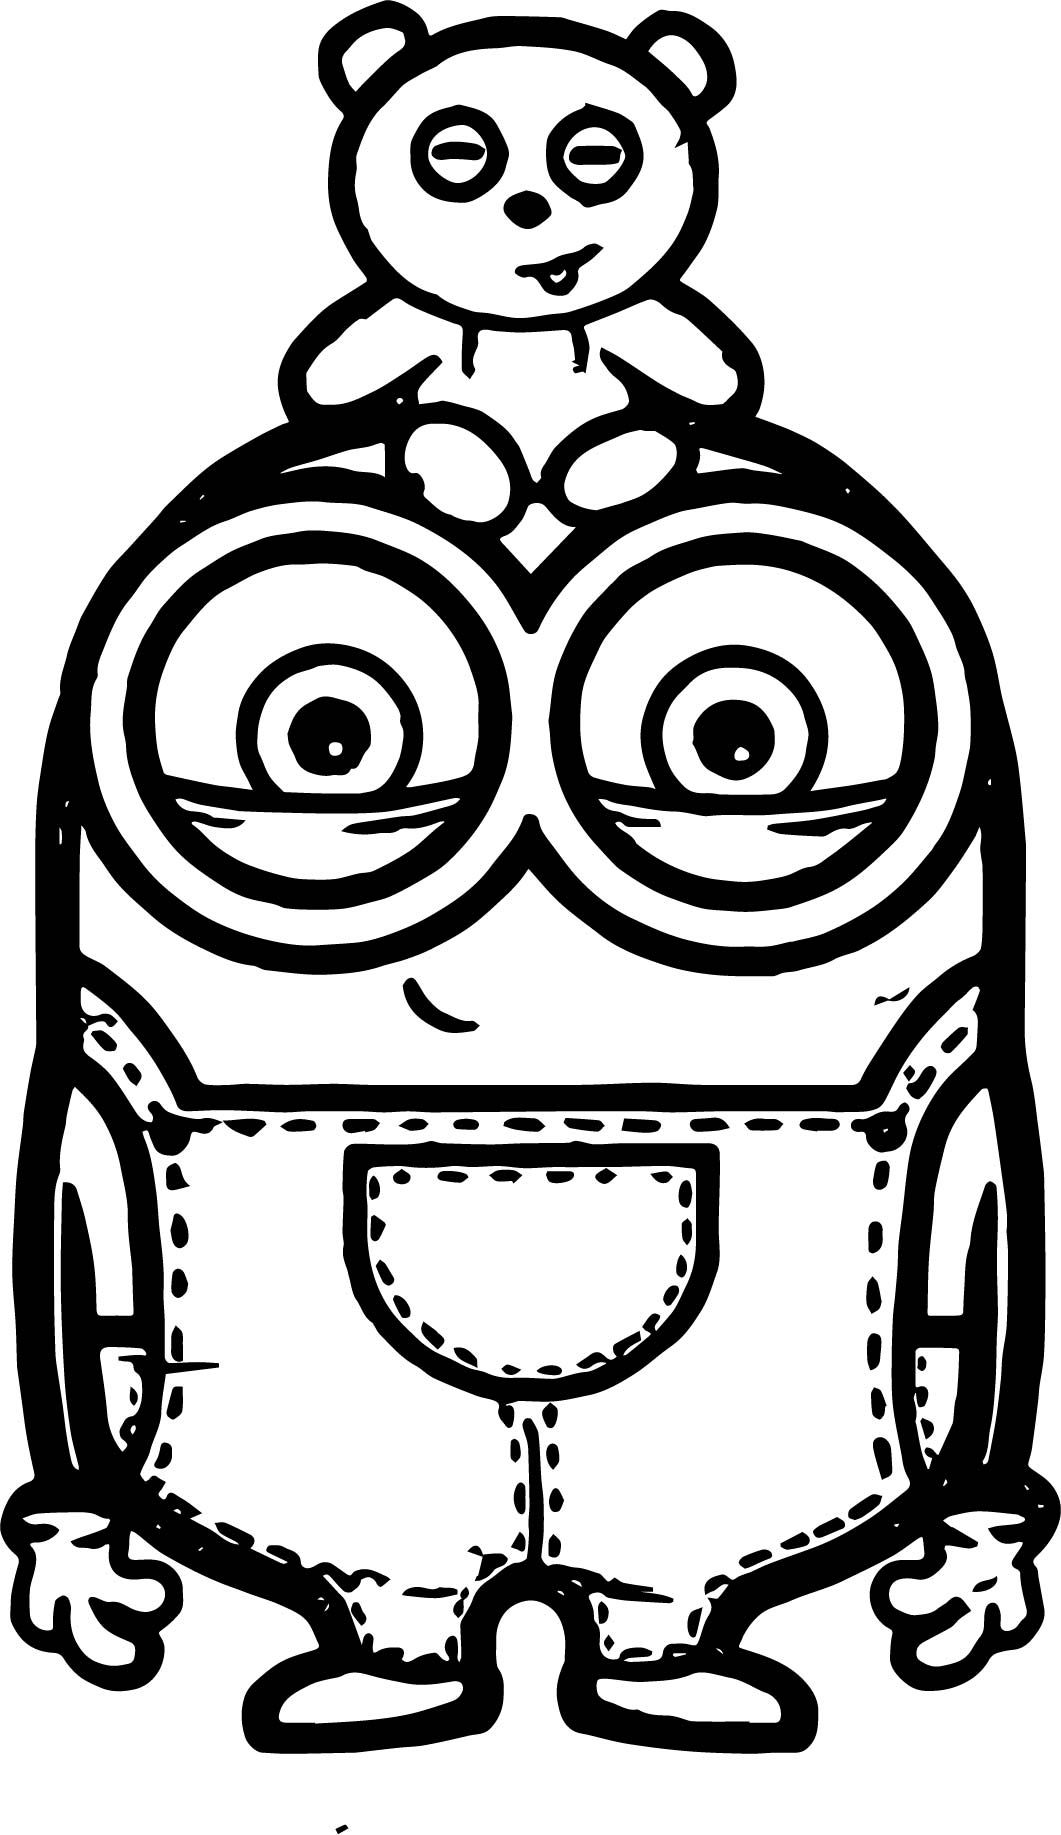 Awesome Minion Bob And Bear Toy Coloring Page Coloriage Coloriage Minion Minion